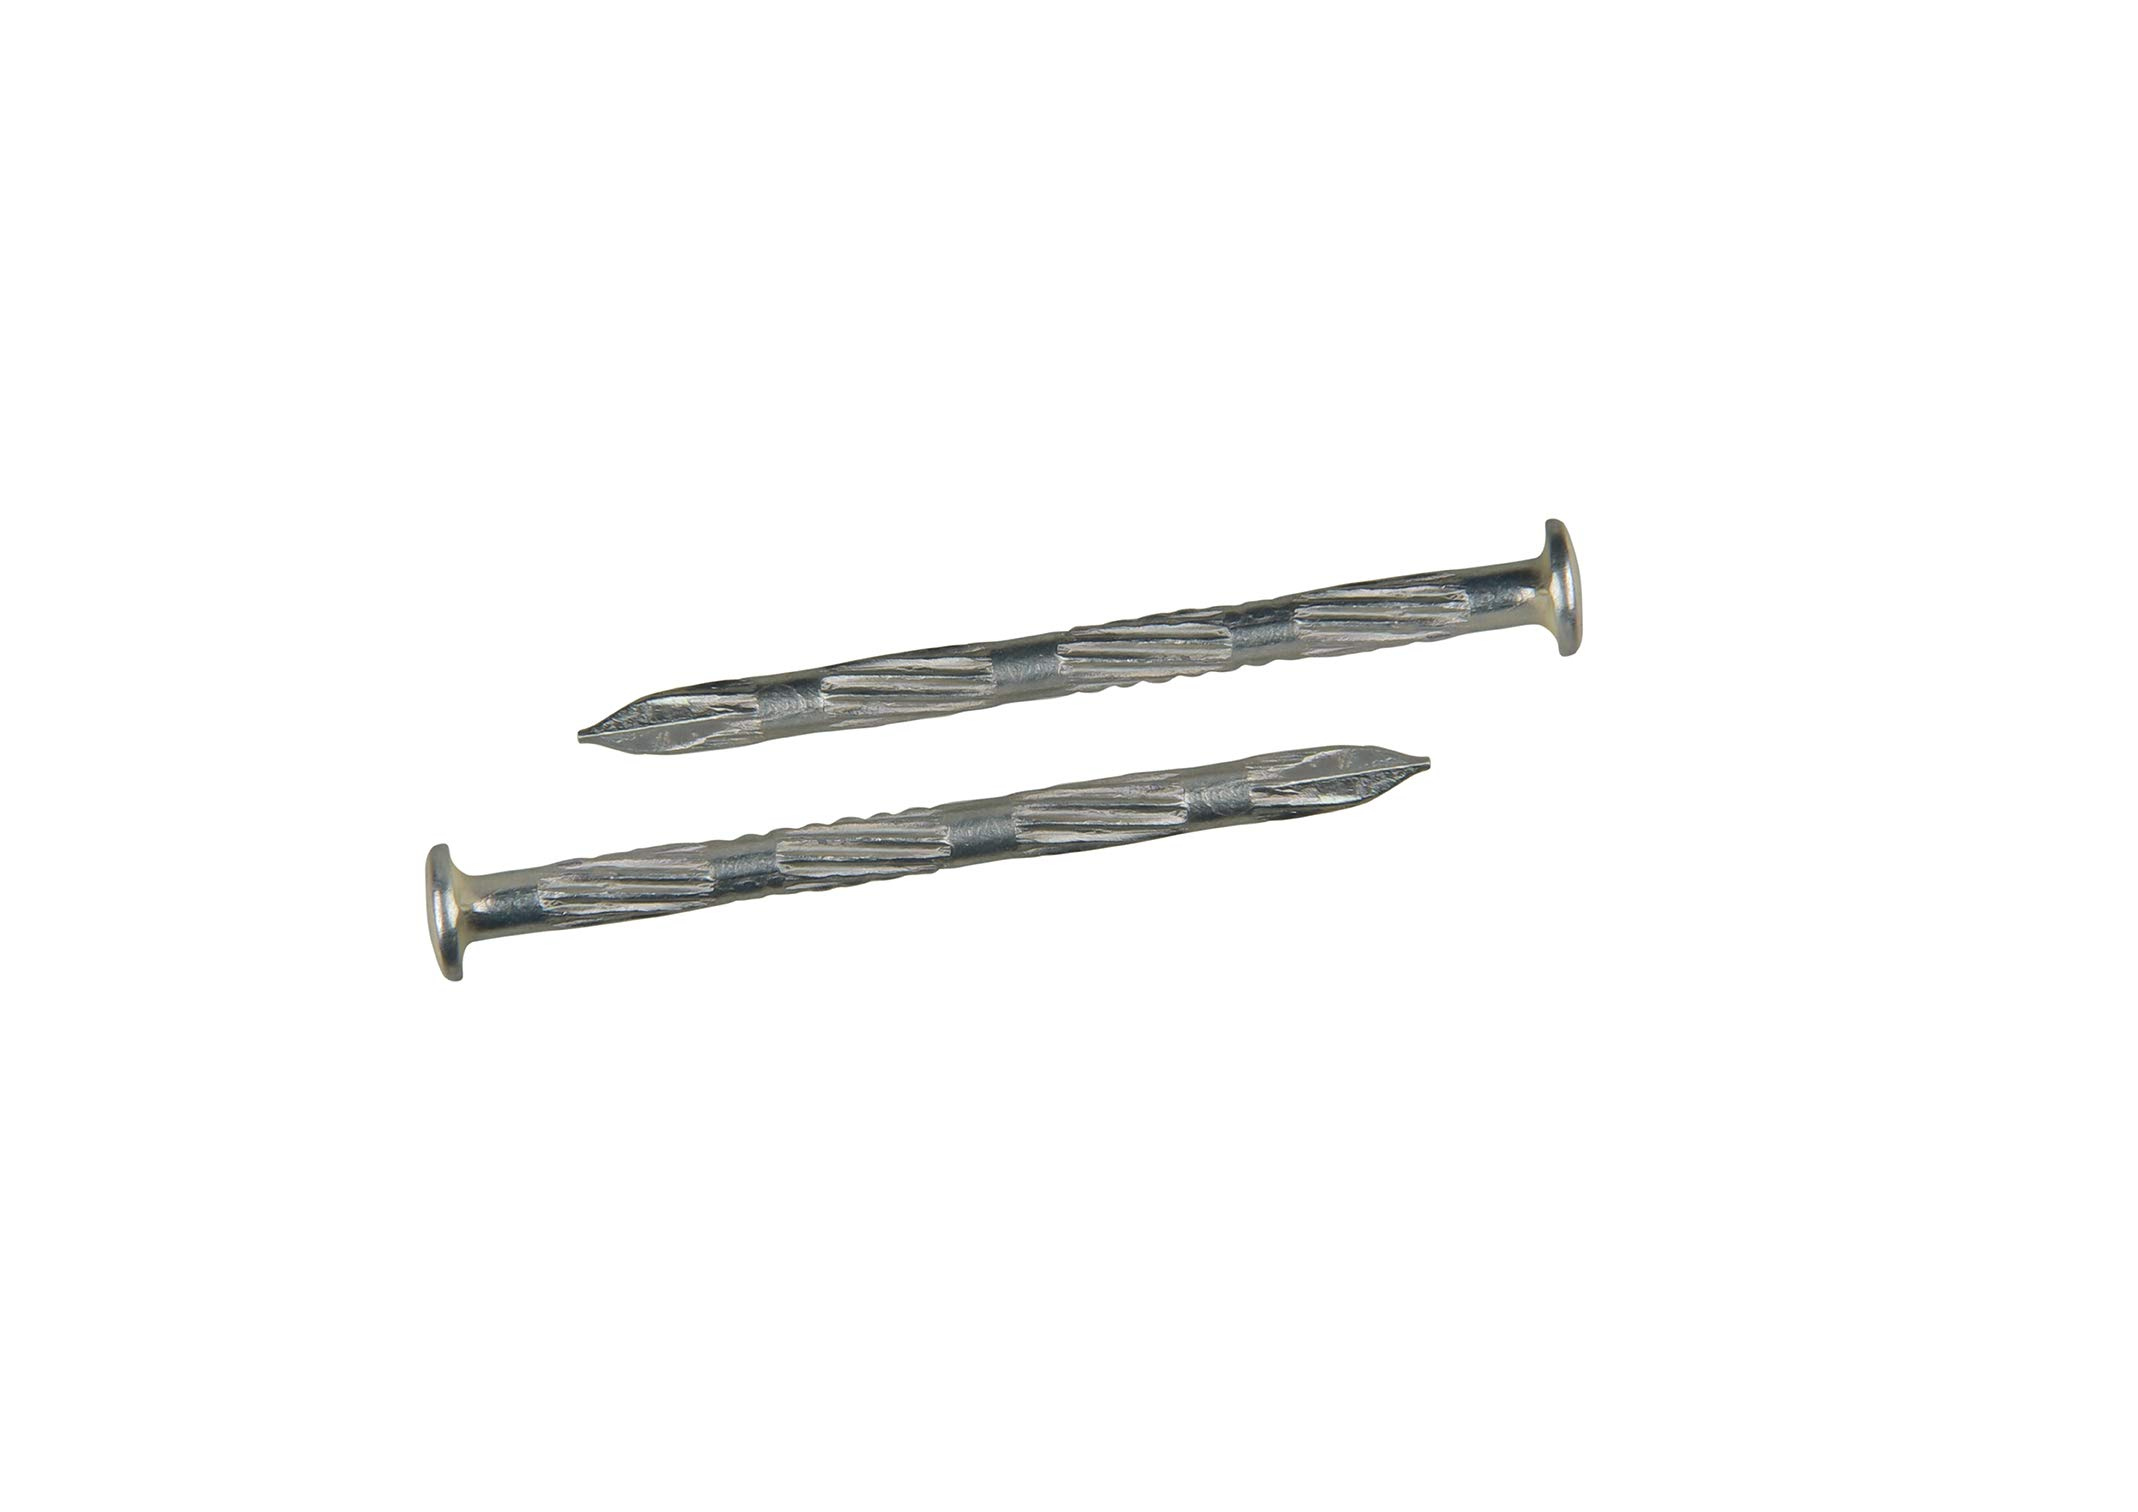 4x60 mm - 2.3 inch Hardened High carbon steel nails for masonry and metal plates zinc plated 200 pcs (2.31 lb.) by Ozcan Steel Nail